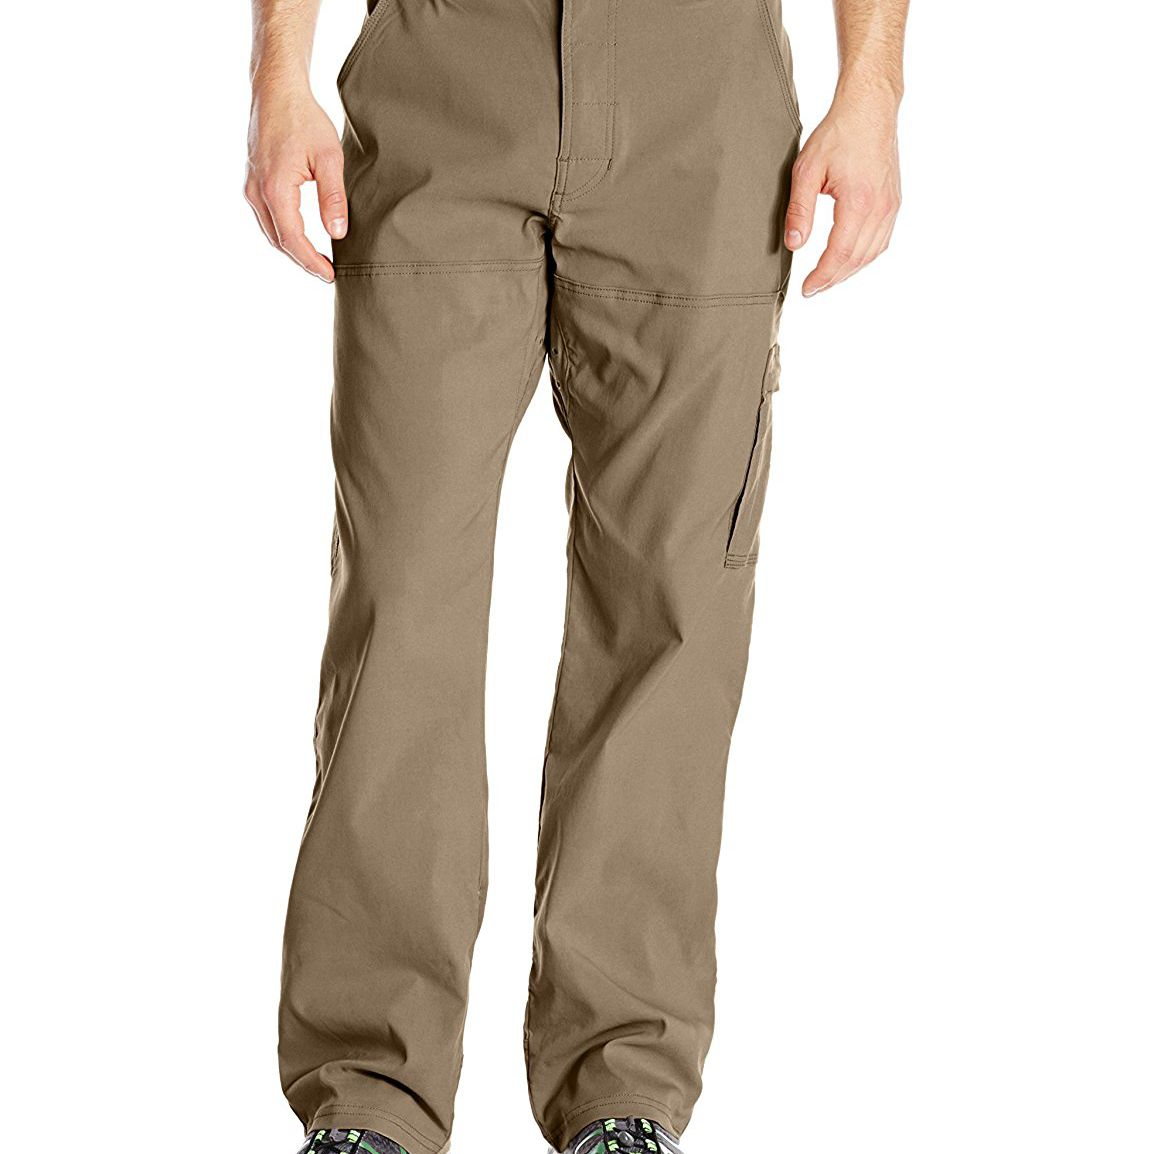 bc7561c55b1a Best Overall: prAna Stretch Zion Pants